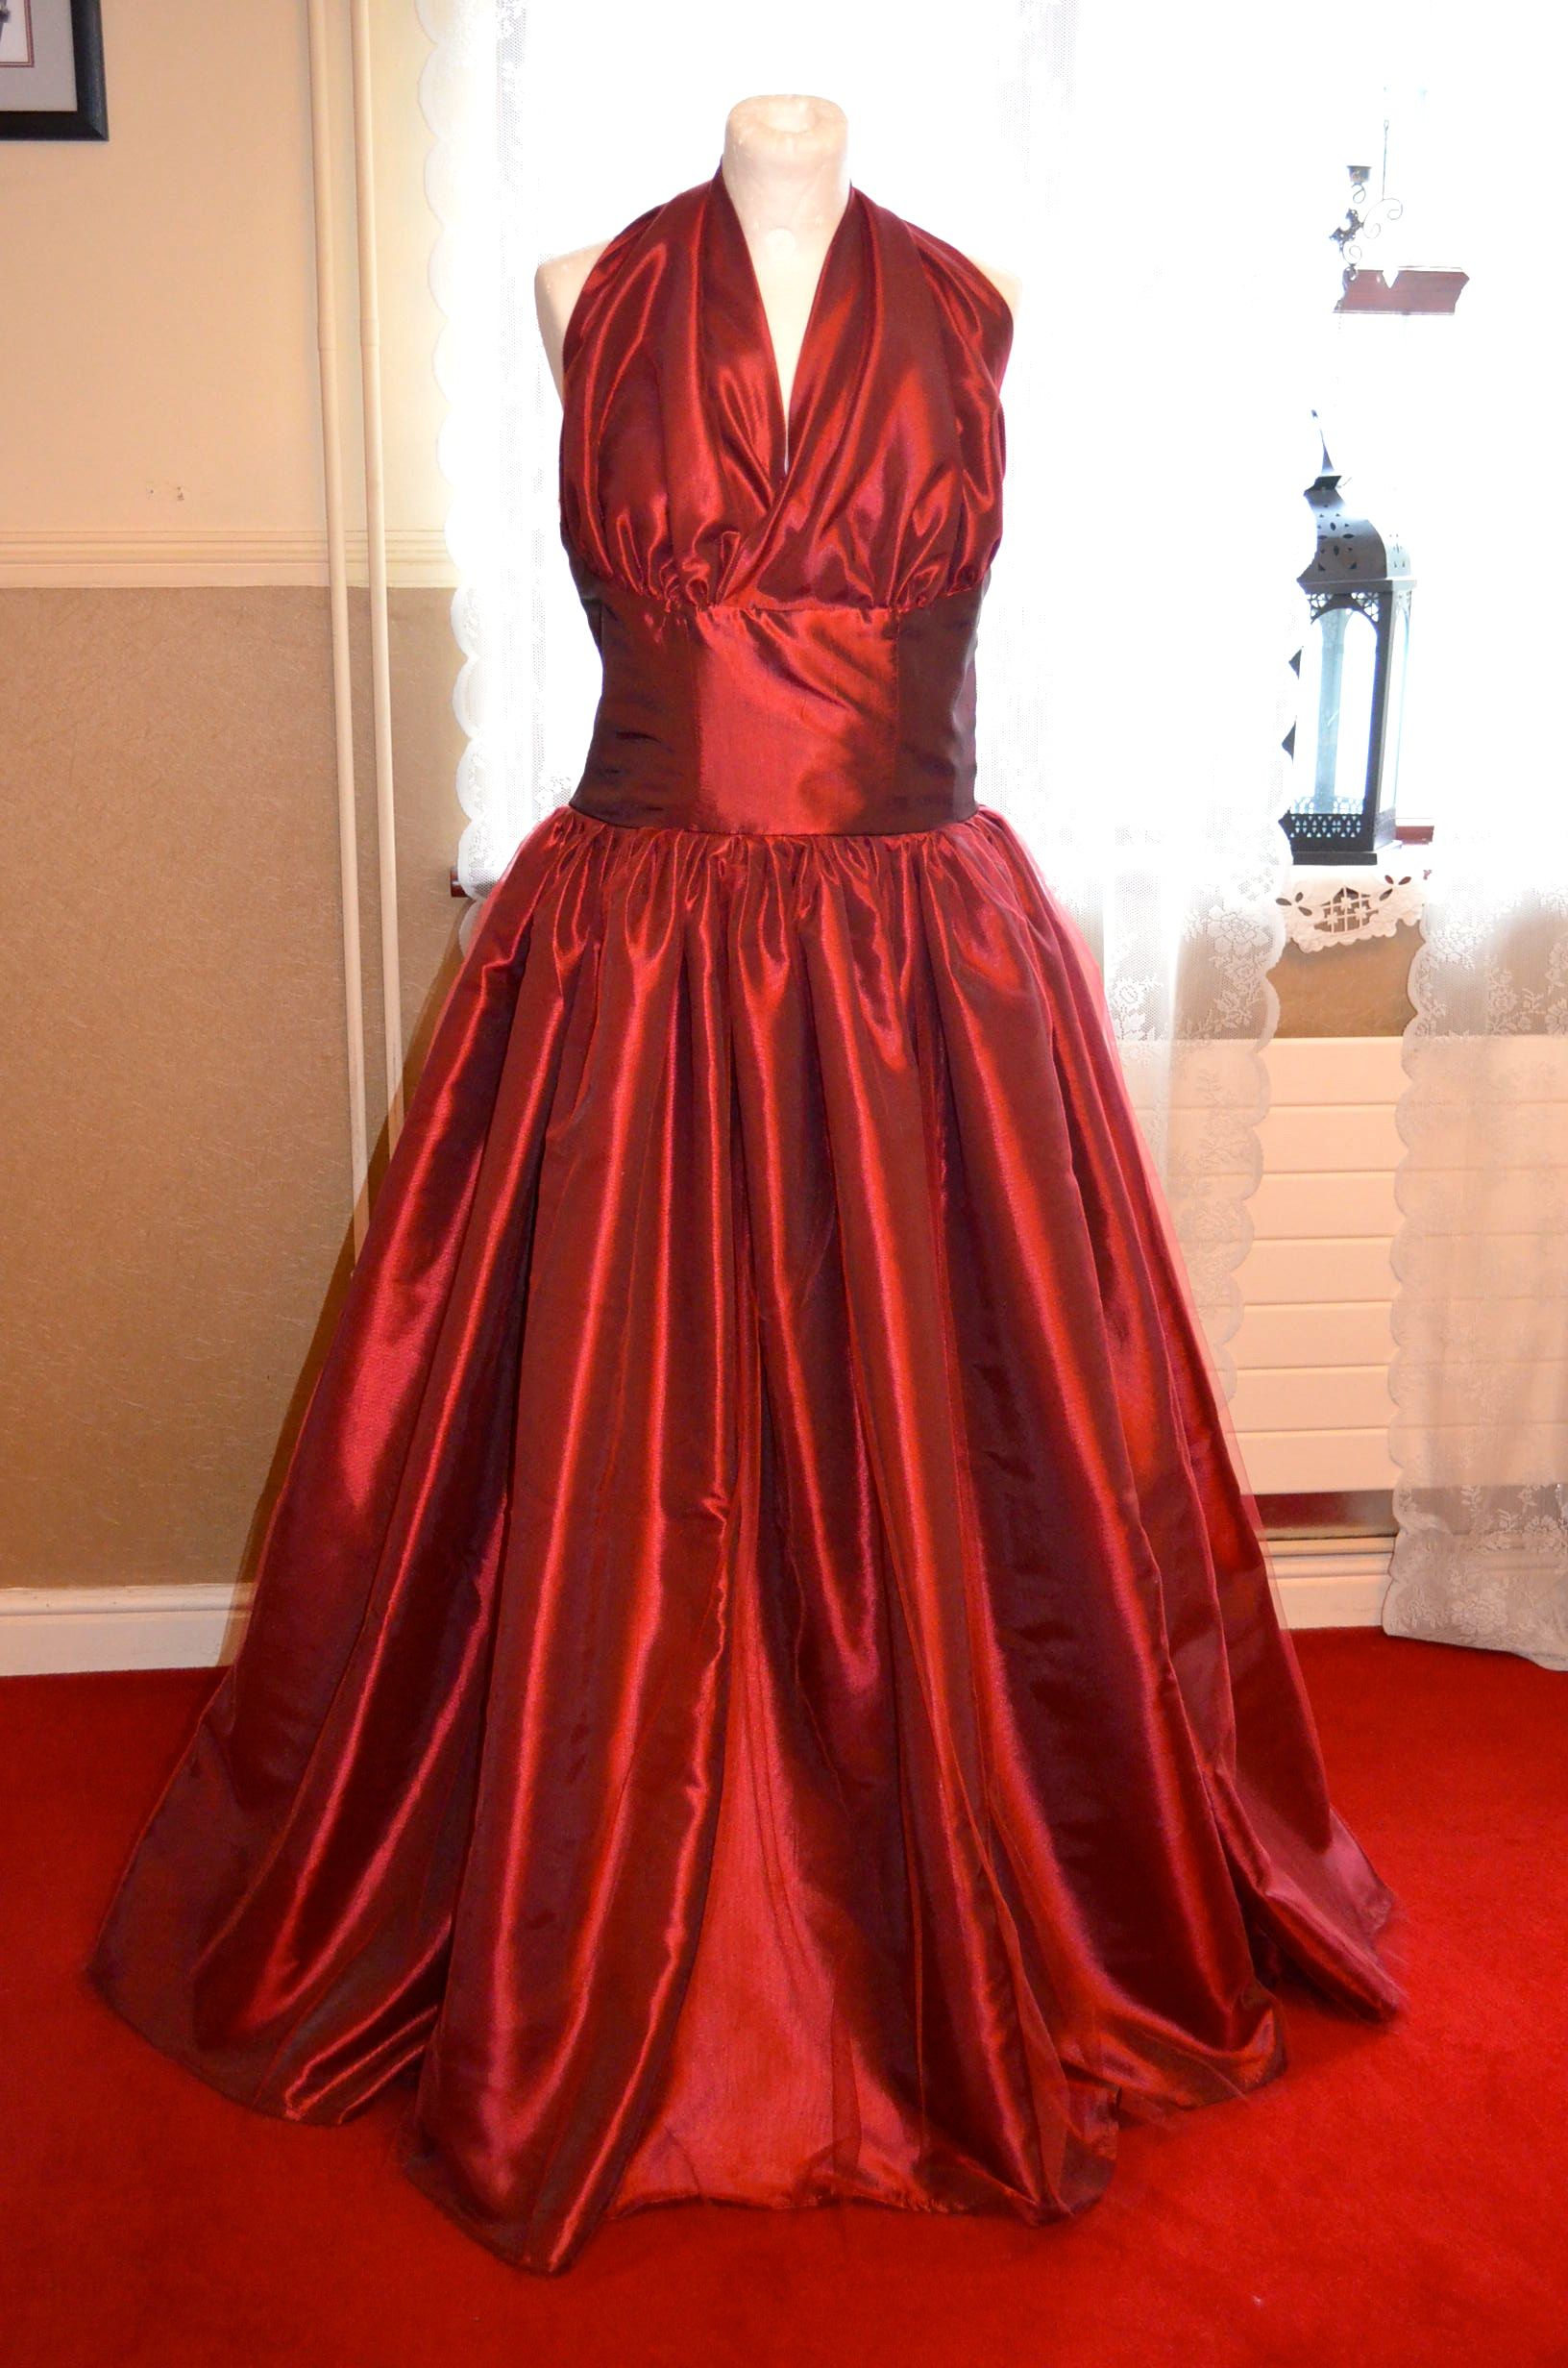 Us style ballgown by uninaswerkeu on etsy outfits i love